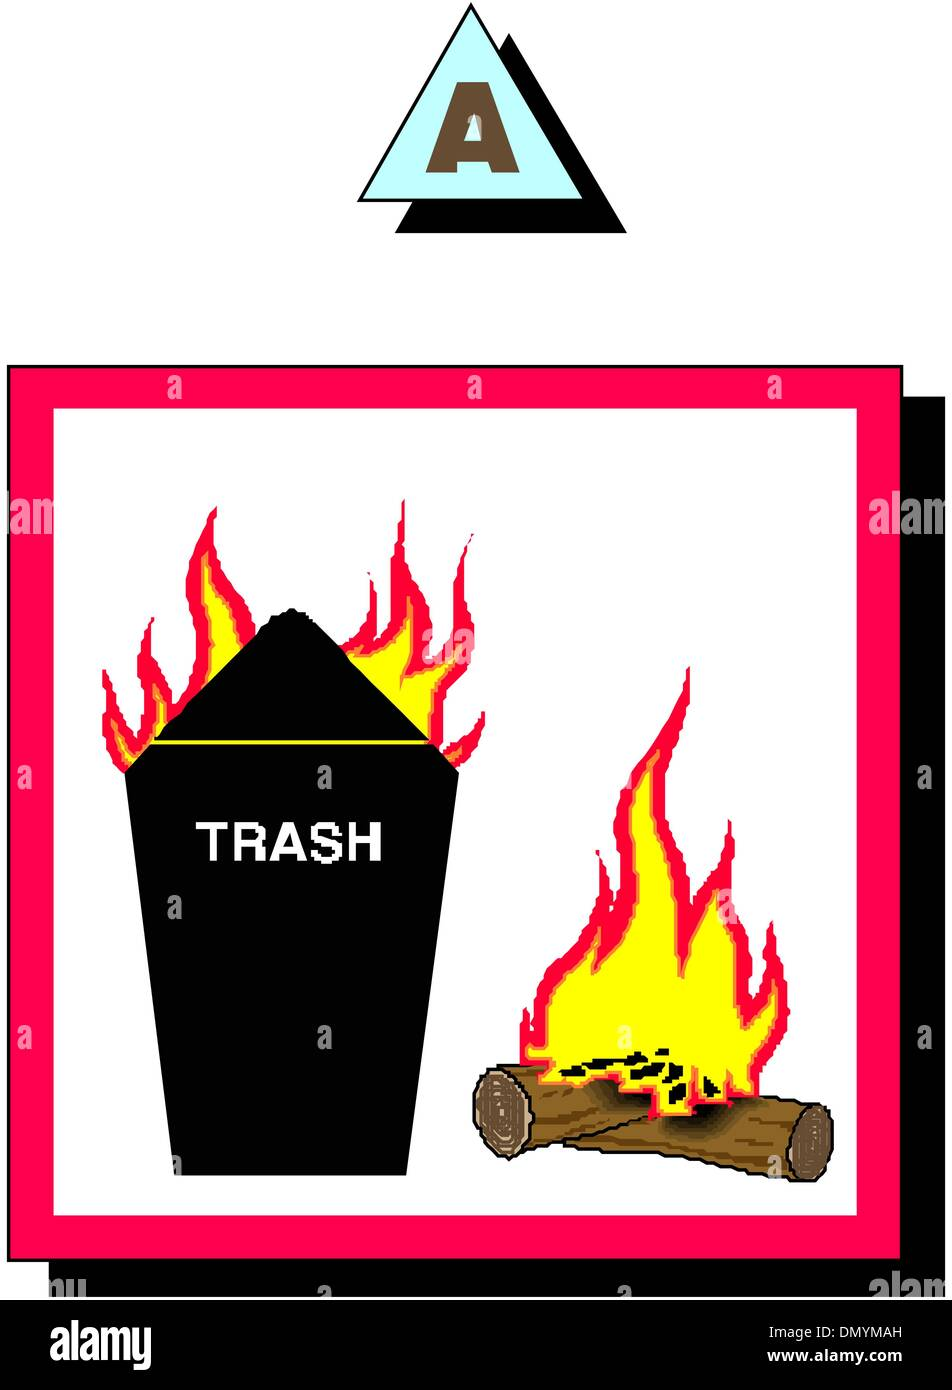 recycle trash can - Stock Image